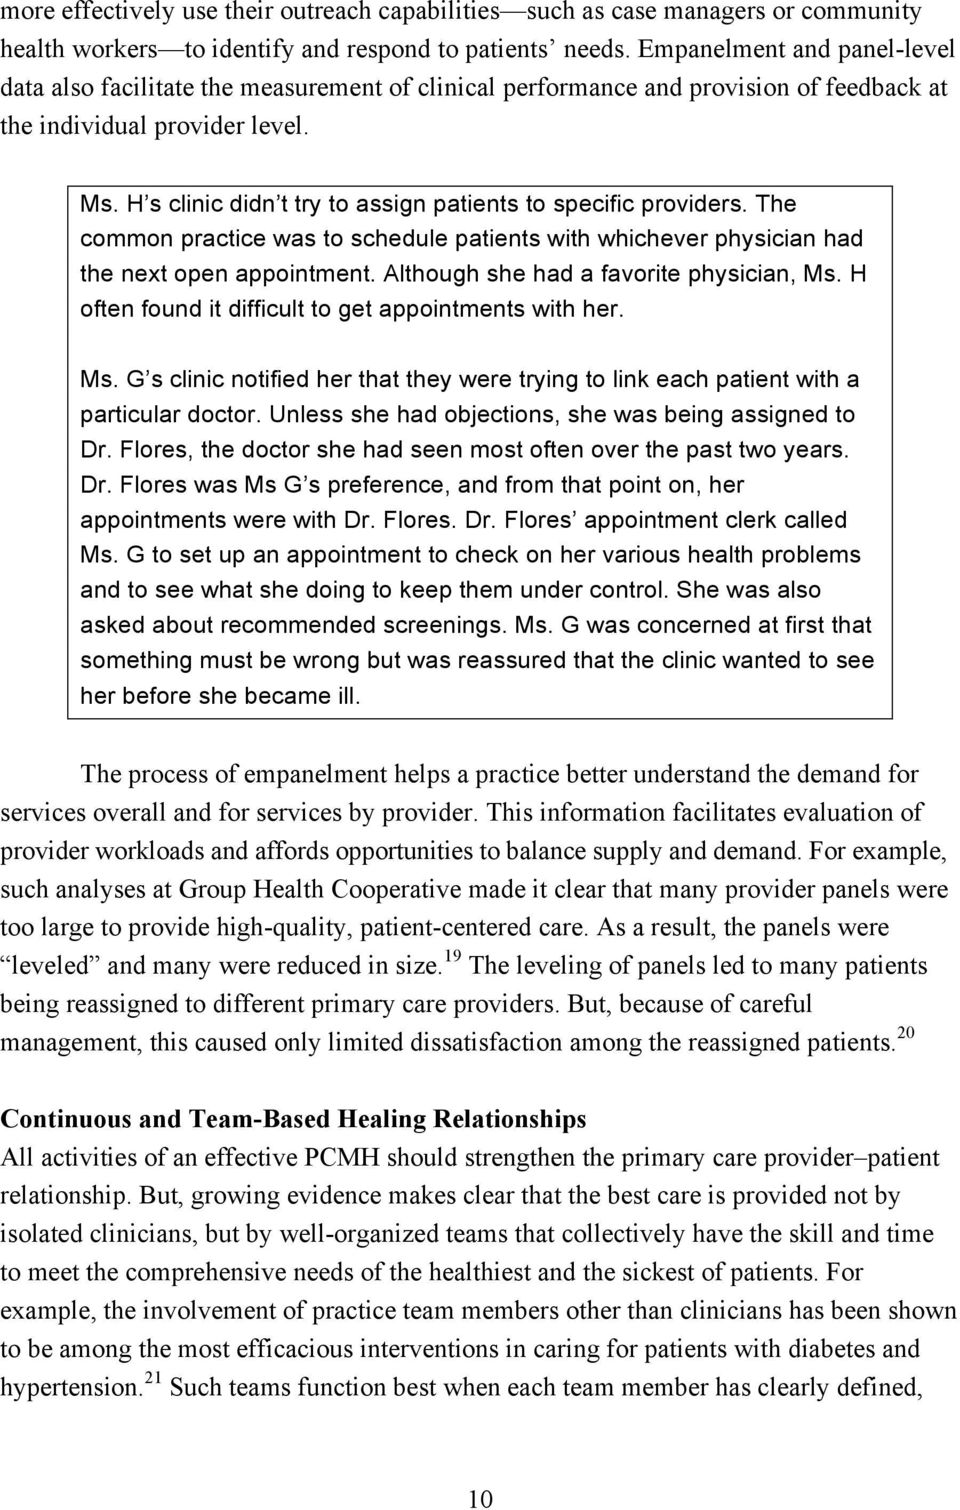 H s clinic didn t try to assign patients to specific providers. The common practice was to schedule patients with whichever physician had the next open appointment.